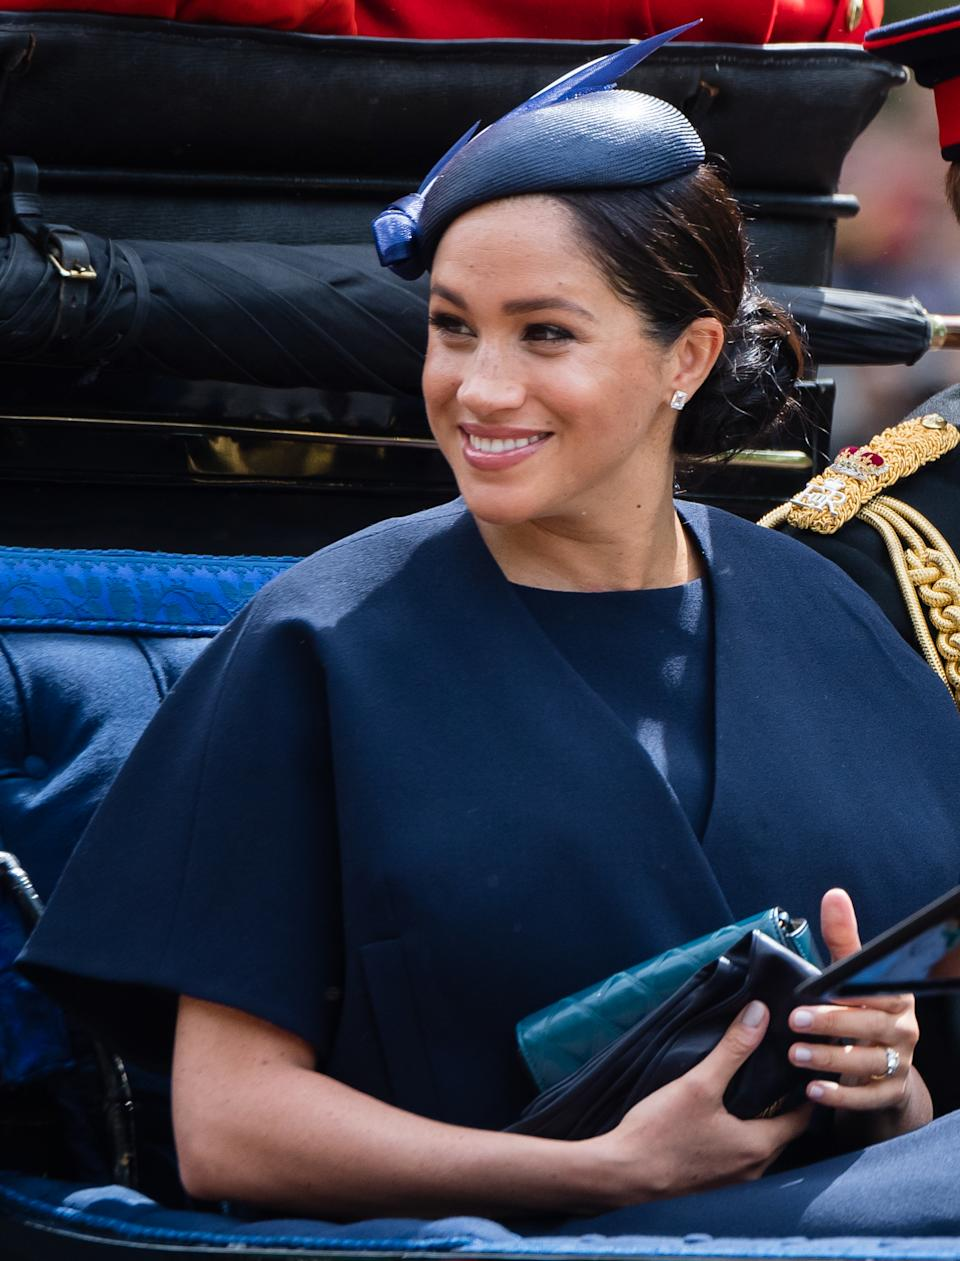 The Duchess of Sussex took a break from maternity leave to join the celebrations and wore a dress by Clare Waight Keller, her wedding dress designer, and a hat by Noel Stewart. (WireImage)